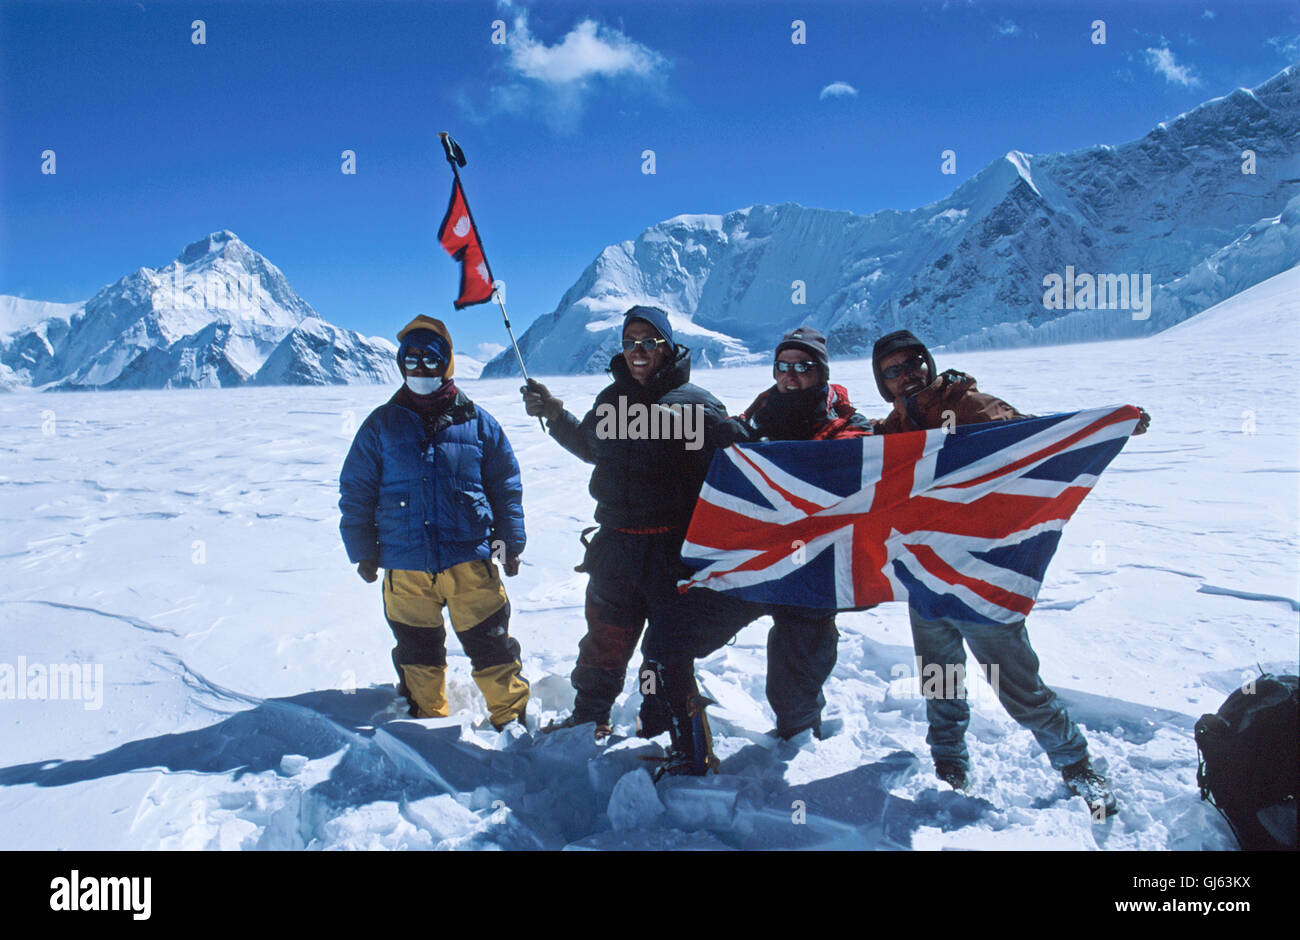 Our  expedition  group  and  Nepali  guides  with  Nepali  flag  attached  to  ski-pole  at  Raphu  La  where  we - Stock Image